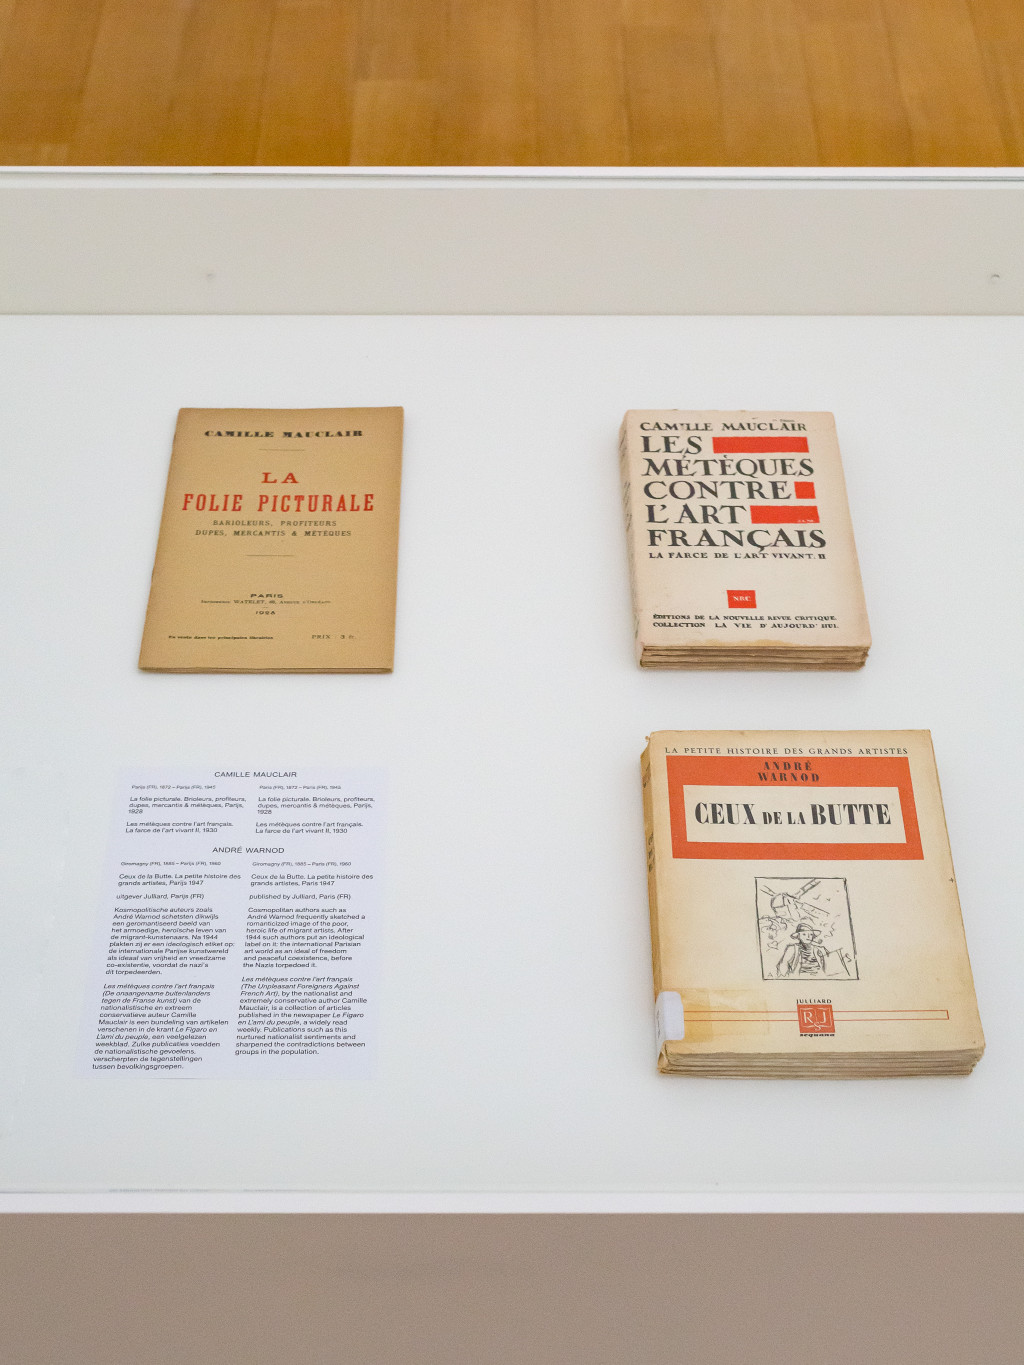 Above: xenophobic and anti-Semitic publications by Camille Mauclair from 1928 and 1930. Below: a cosmopolitan publication by André Warnod from 1947, about the peaceful co-existence of international artists in Paris . Photo: Peter Tijhuis.